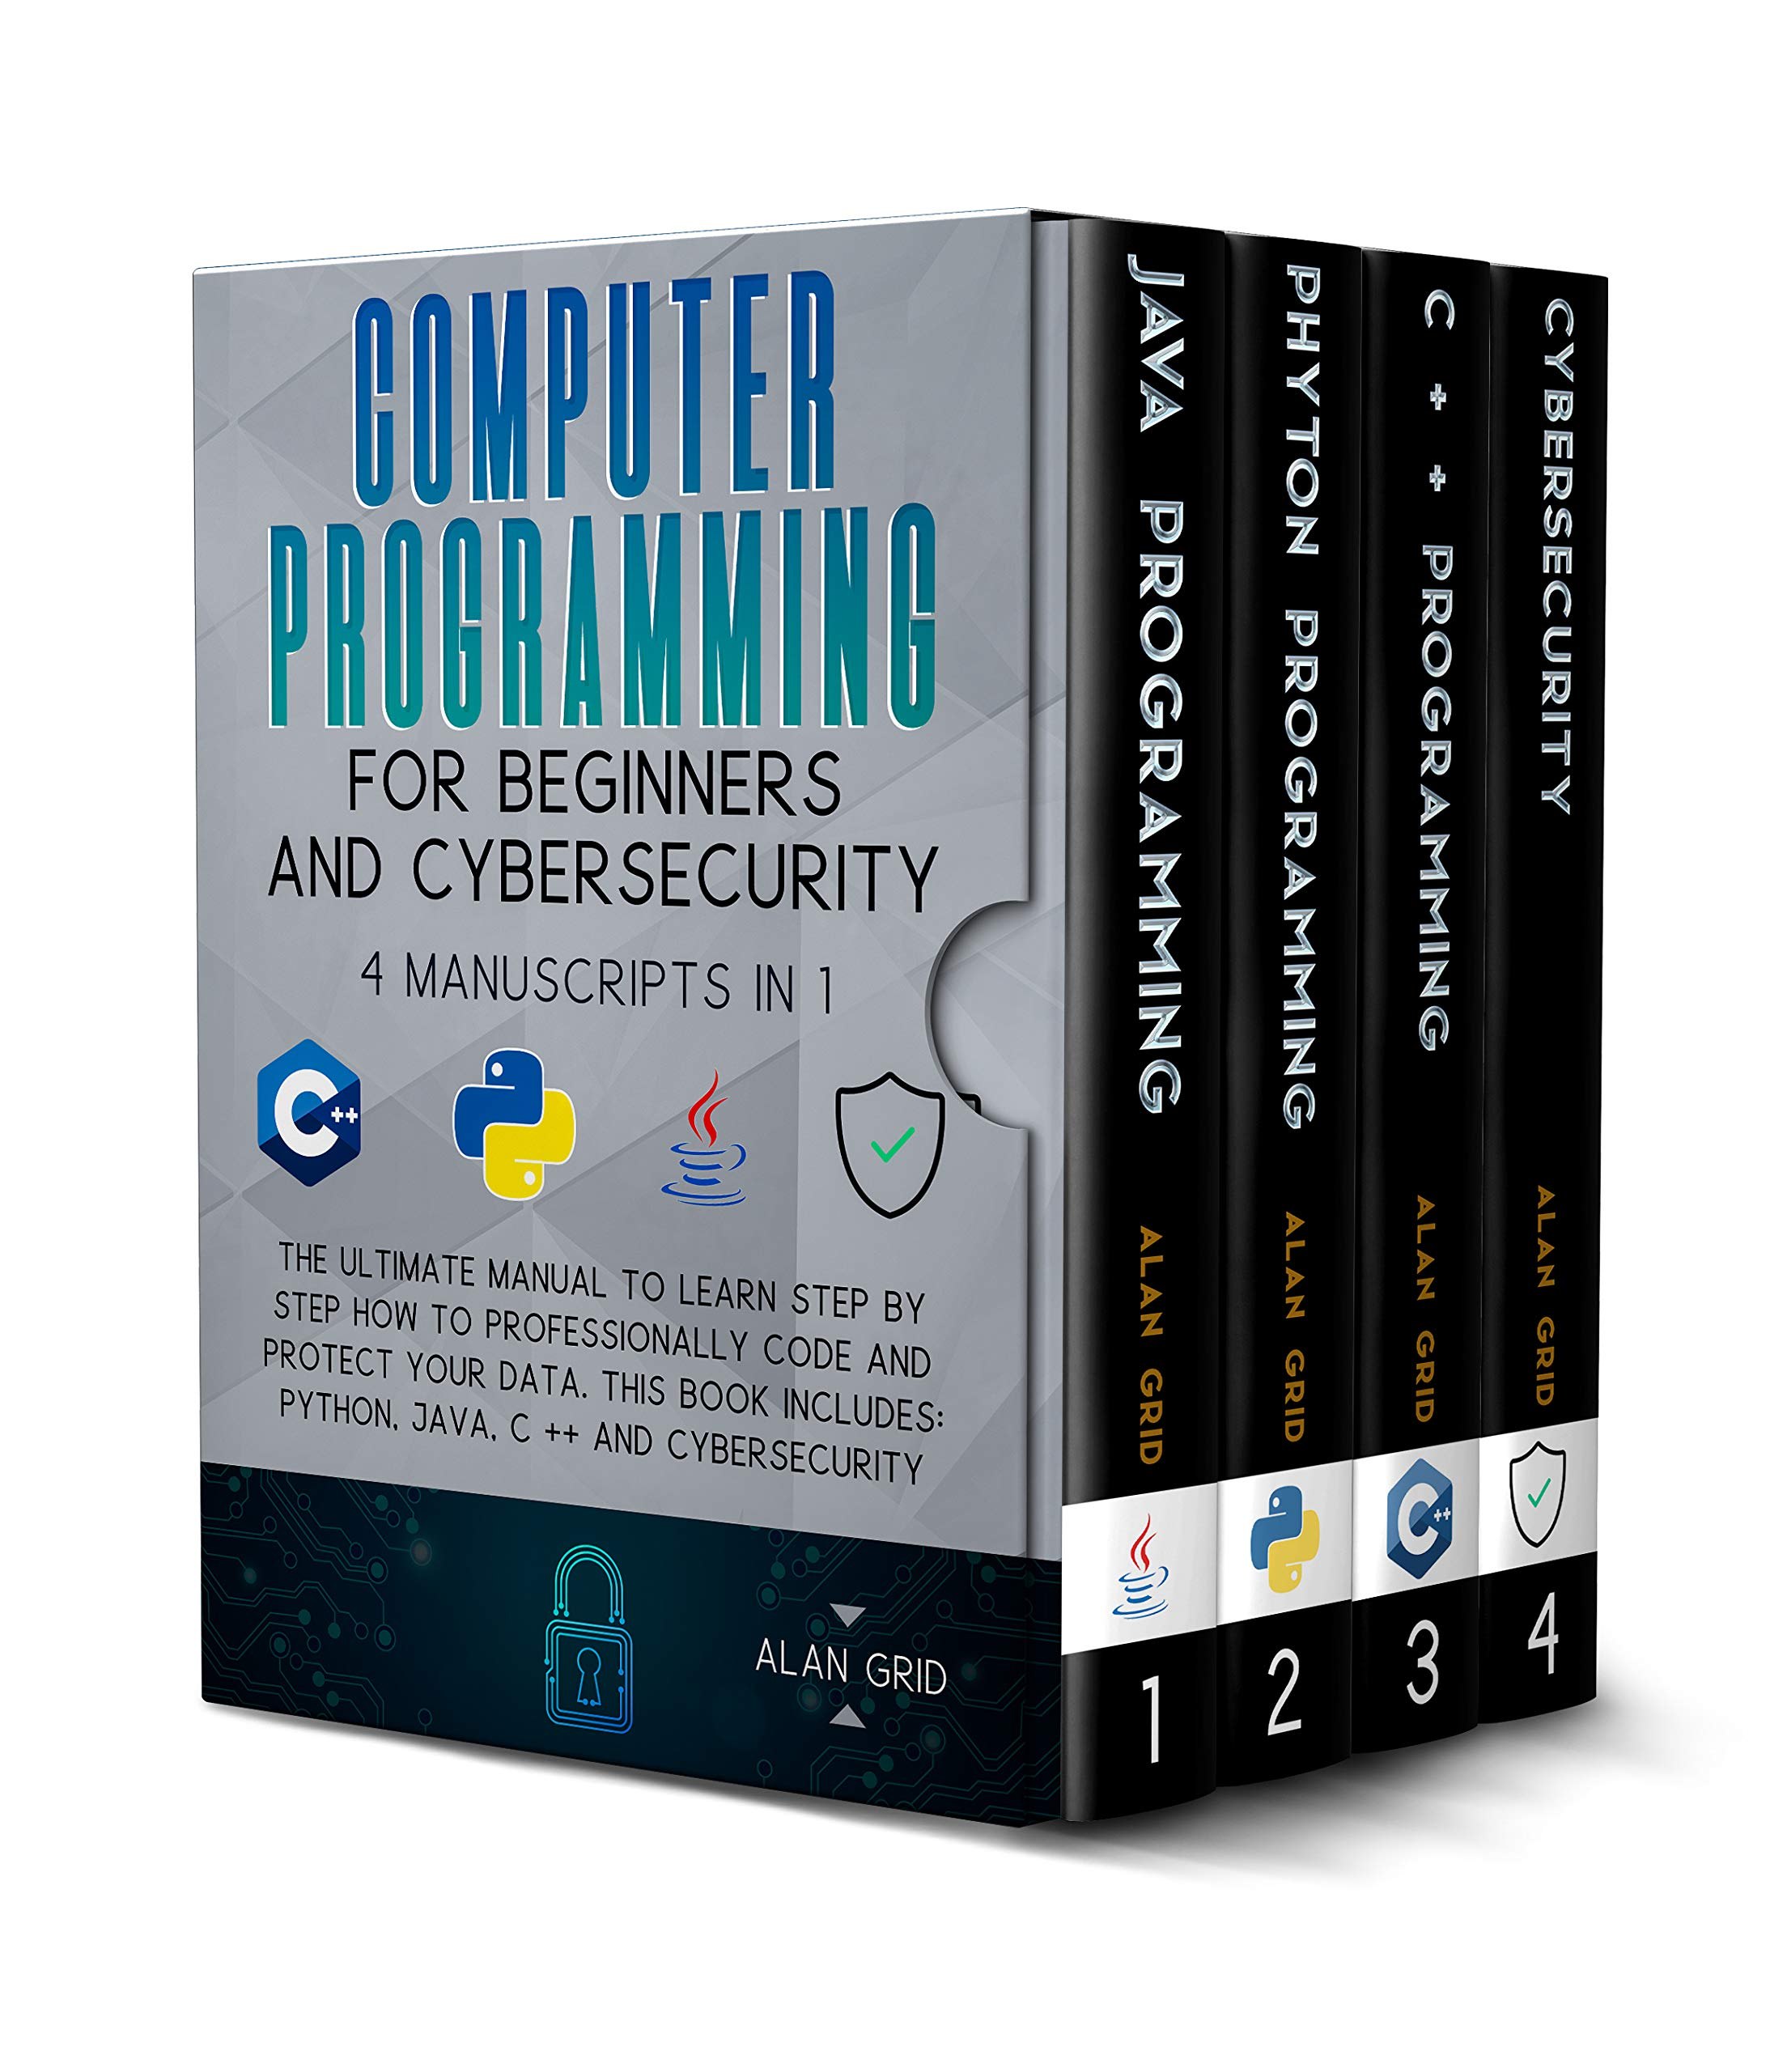 Computer Programming for Beginners and Cybersecurity: The Ultimate Manual to Learn step by step how to Professionally Code and Protect Your Data. This Book includes: Python, Java, C++ & Cybersecurity